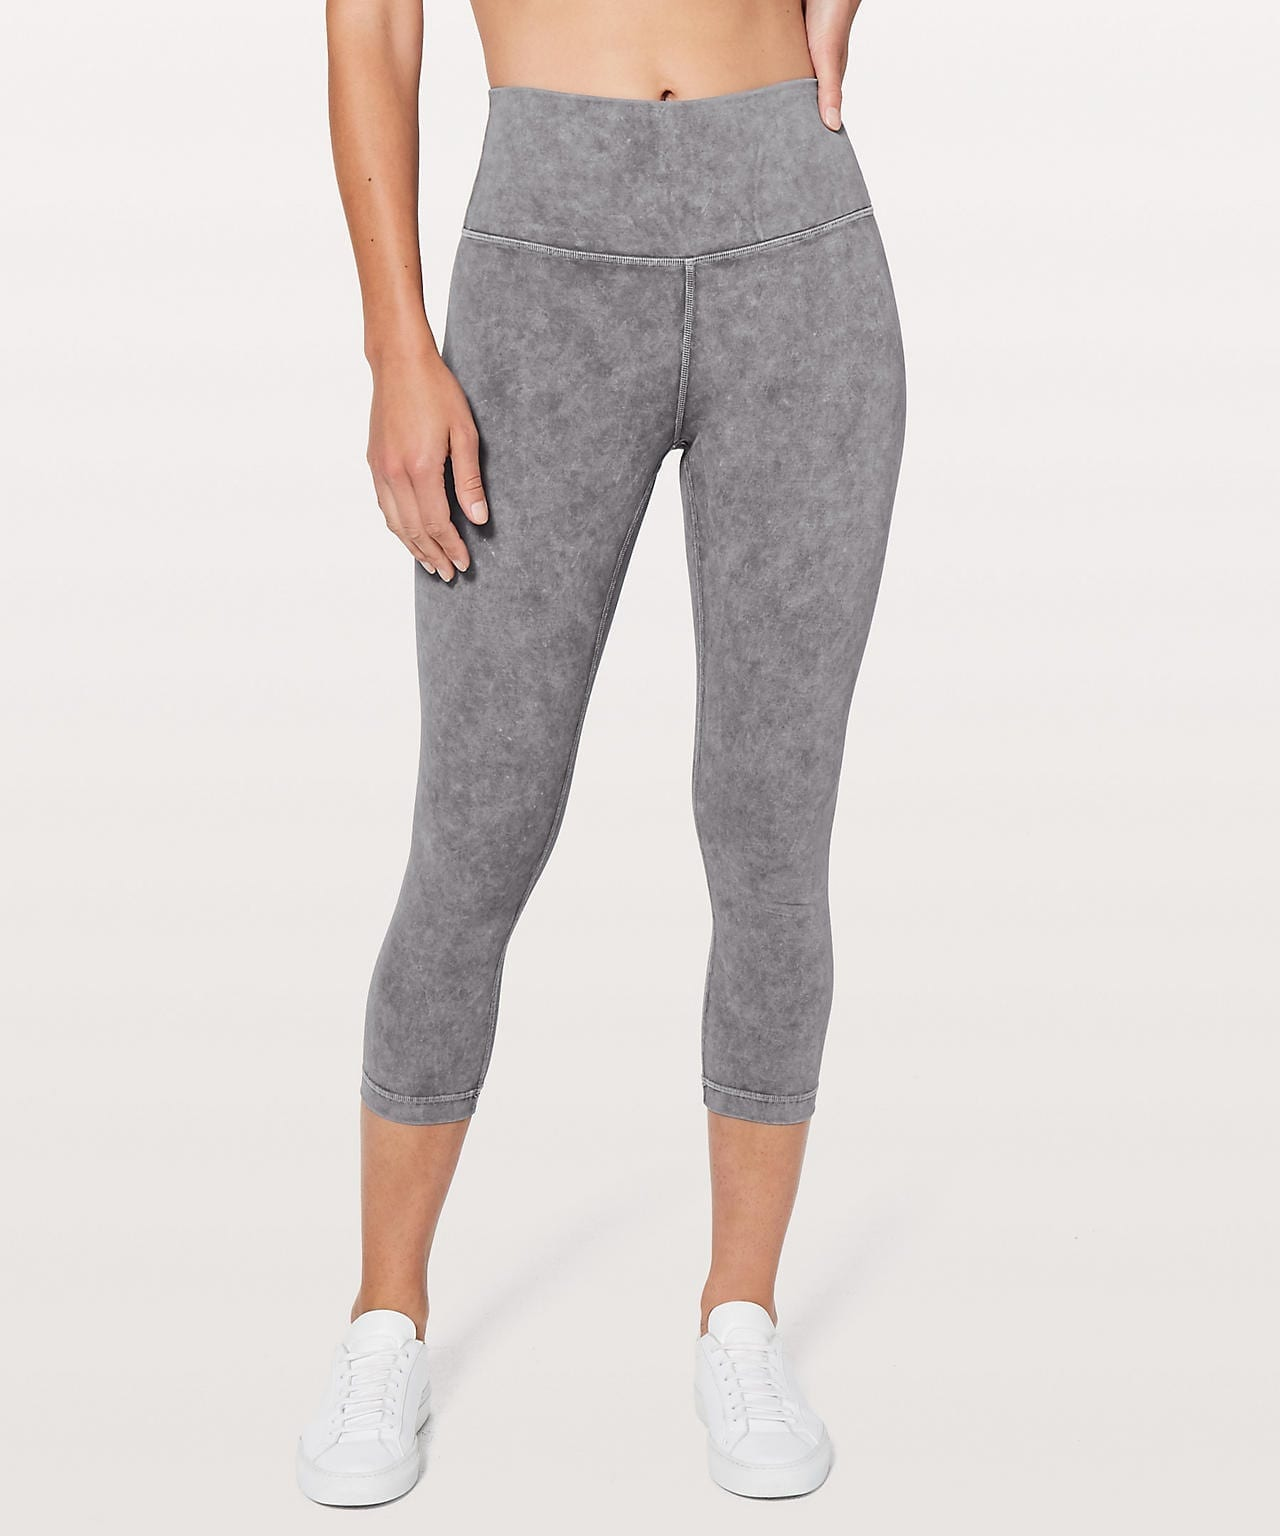 Lululemon Wunder Under Crop (Hi-Rise) Full-On Luxtreme *Washed Luna